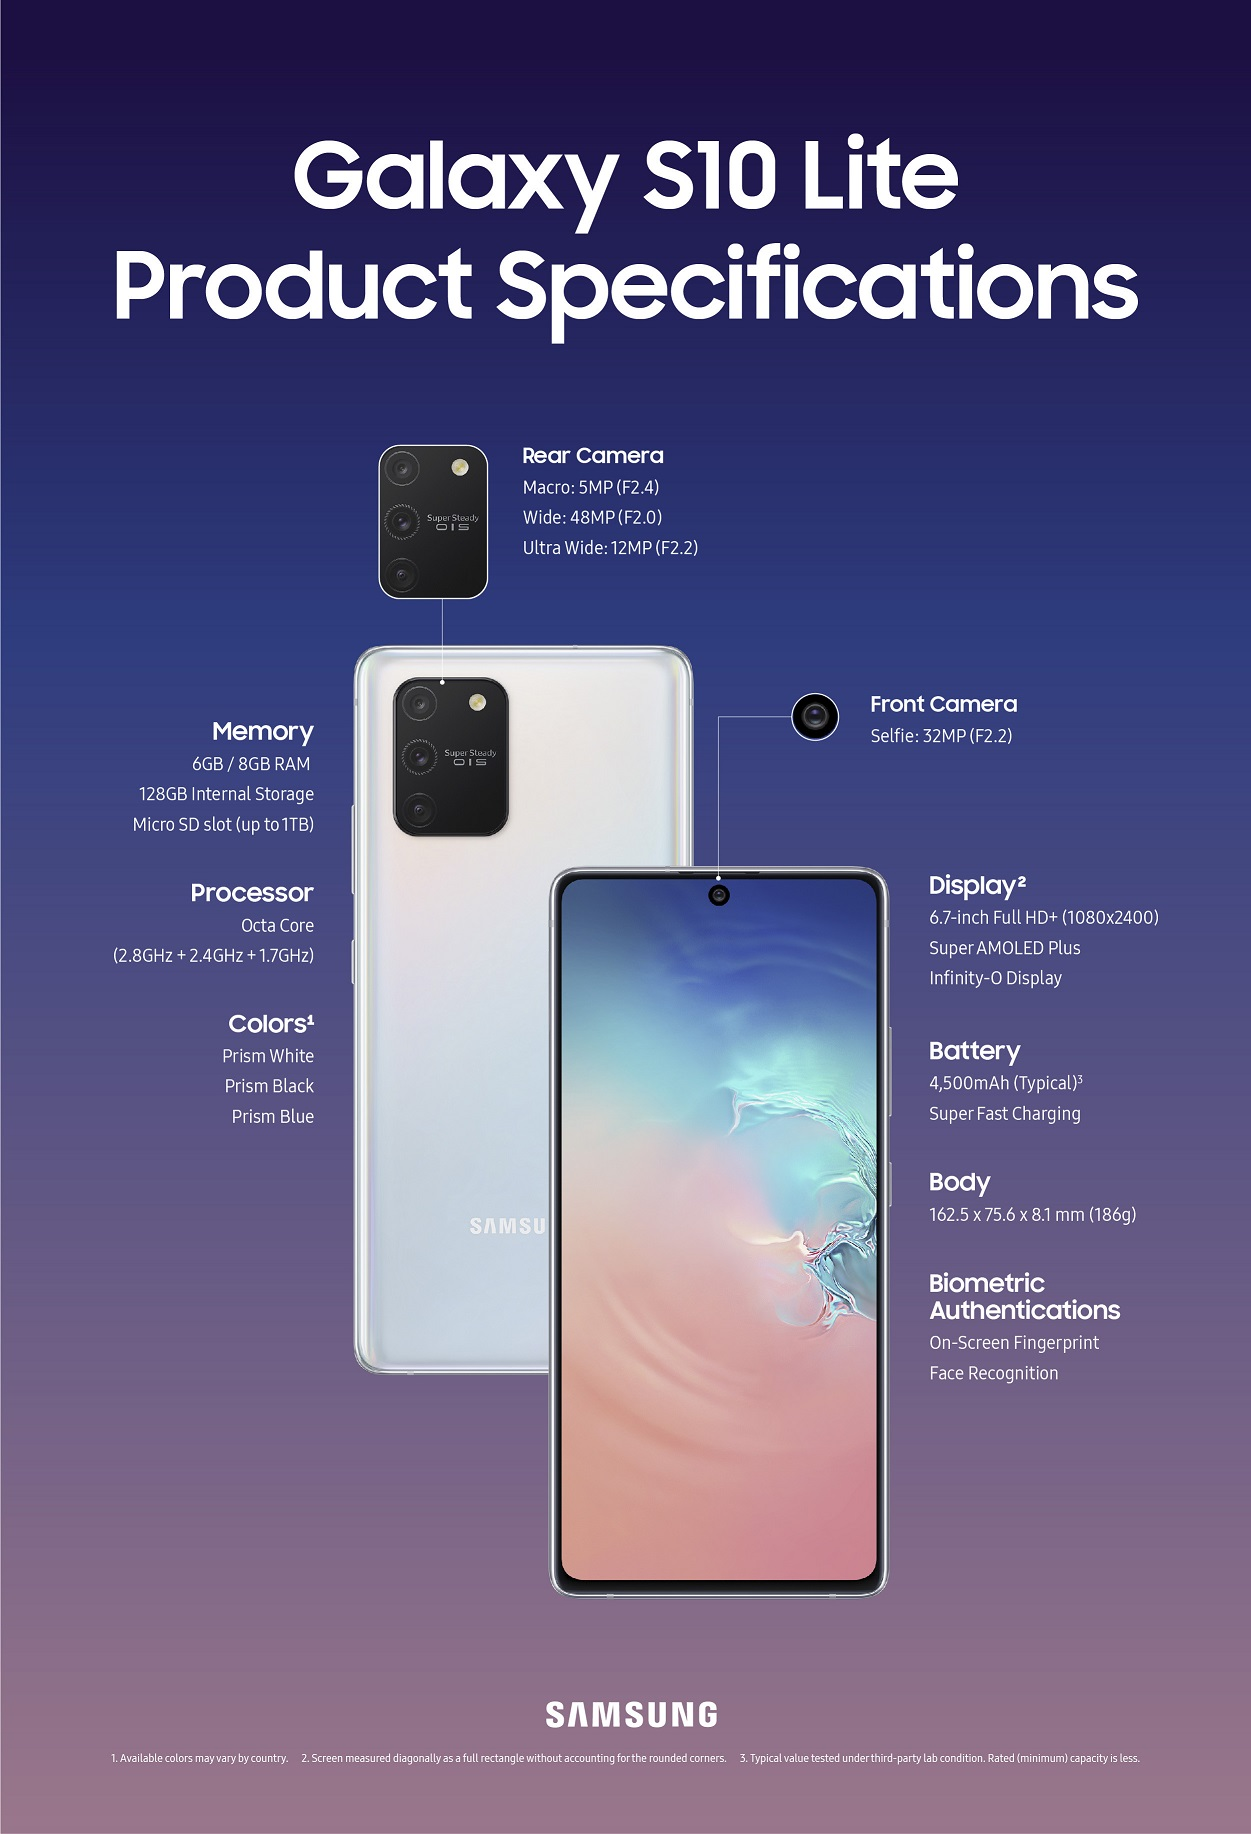 Samsung Galaxy S10 Lite screen size and resolution, dimensions, cameras front and back, battery and memory.